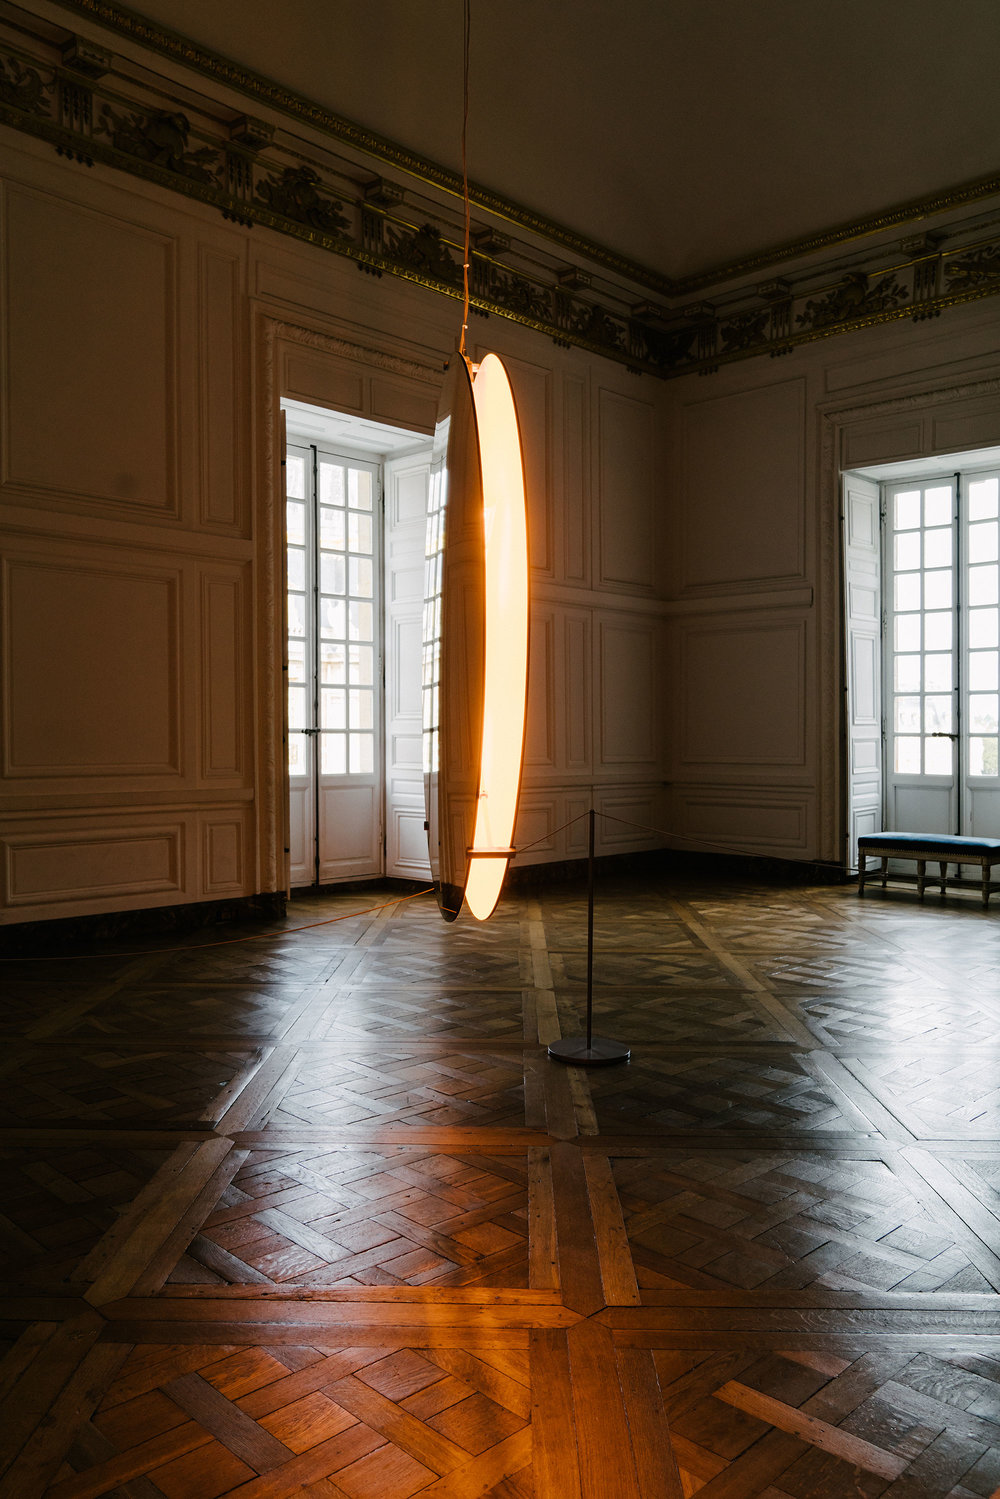 Solar compression, 2016 by Olafur Eliasson